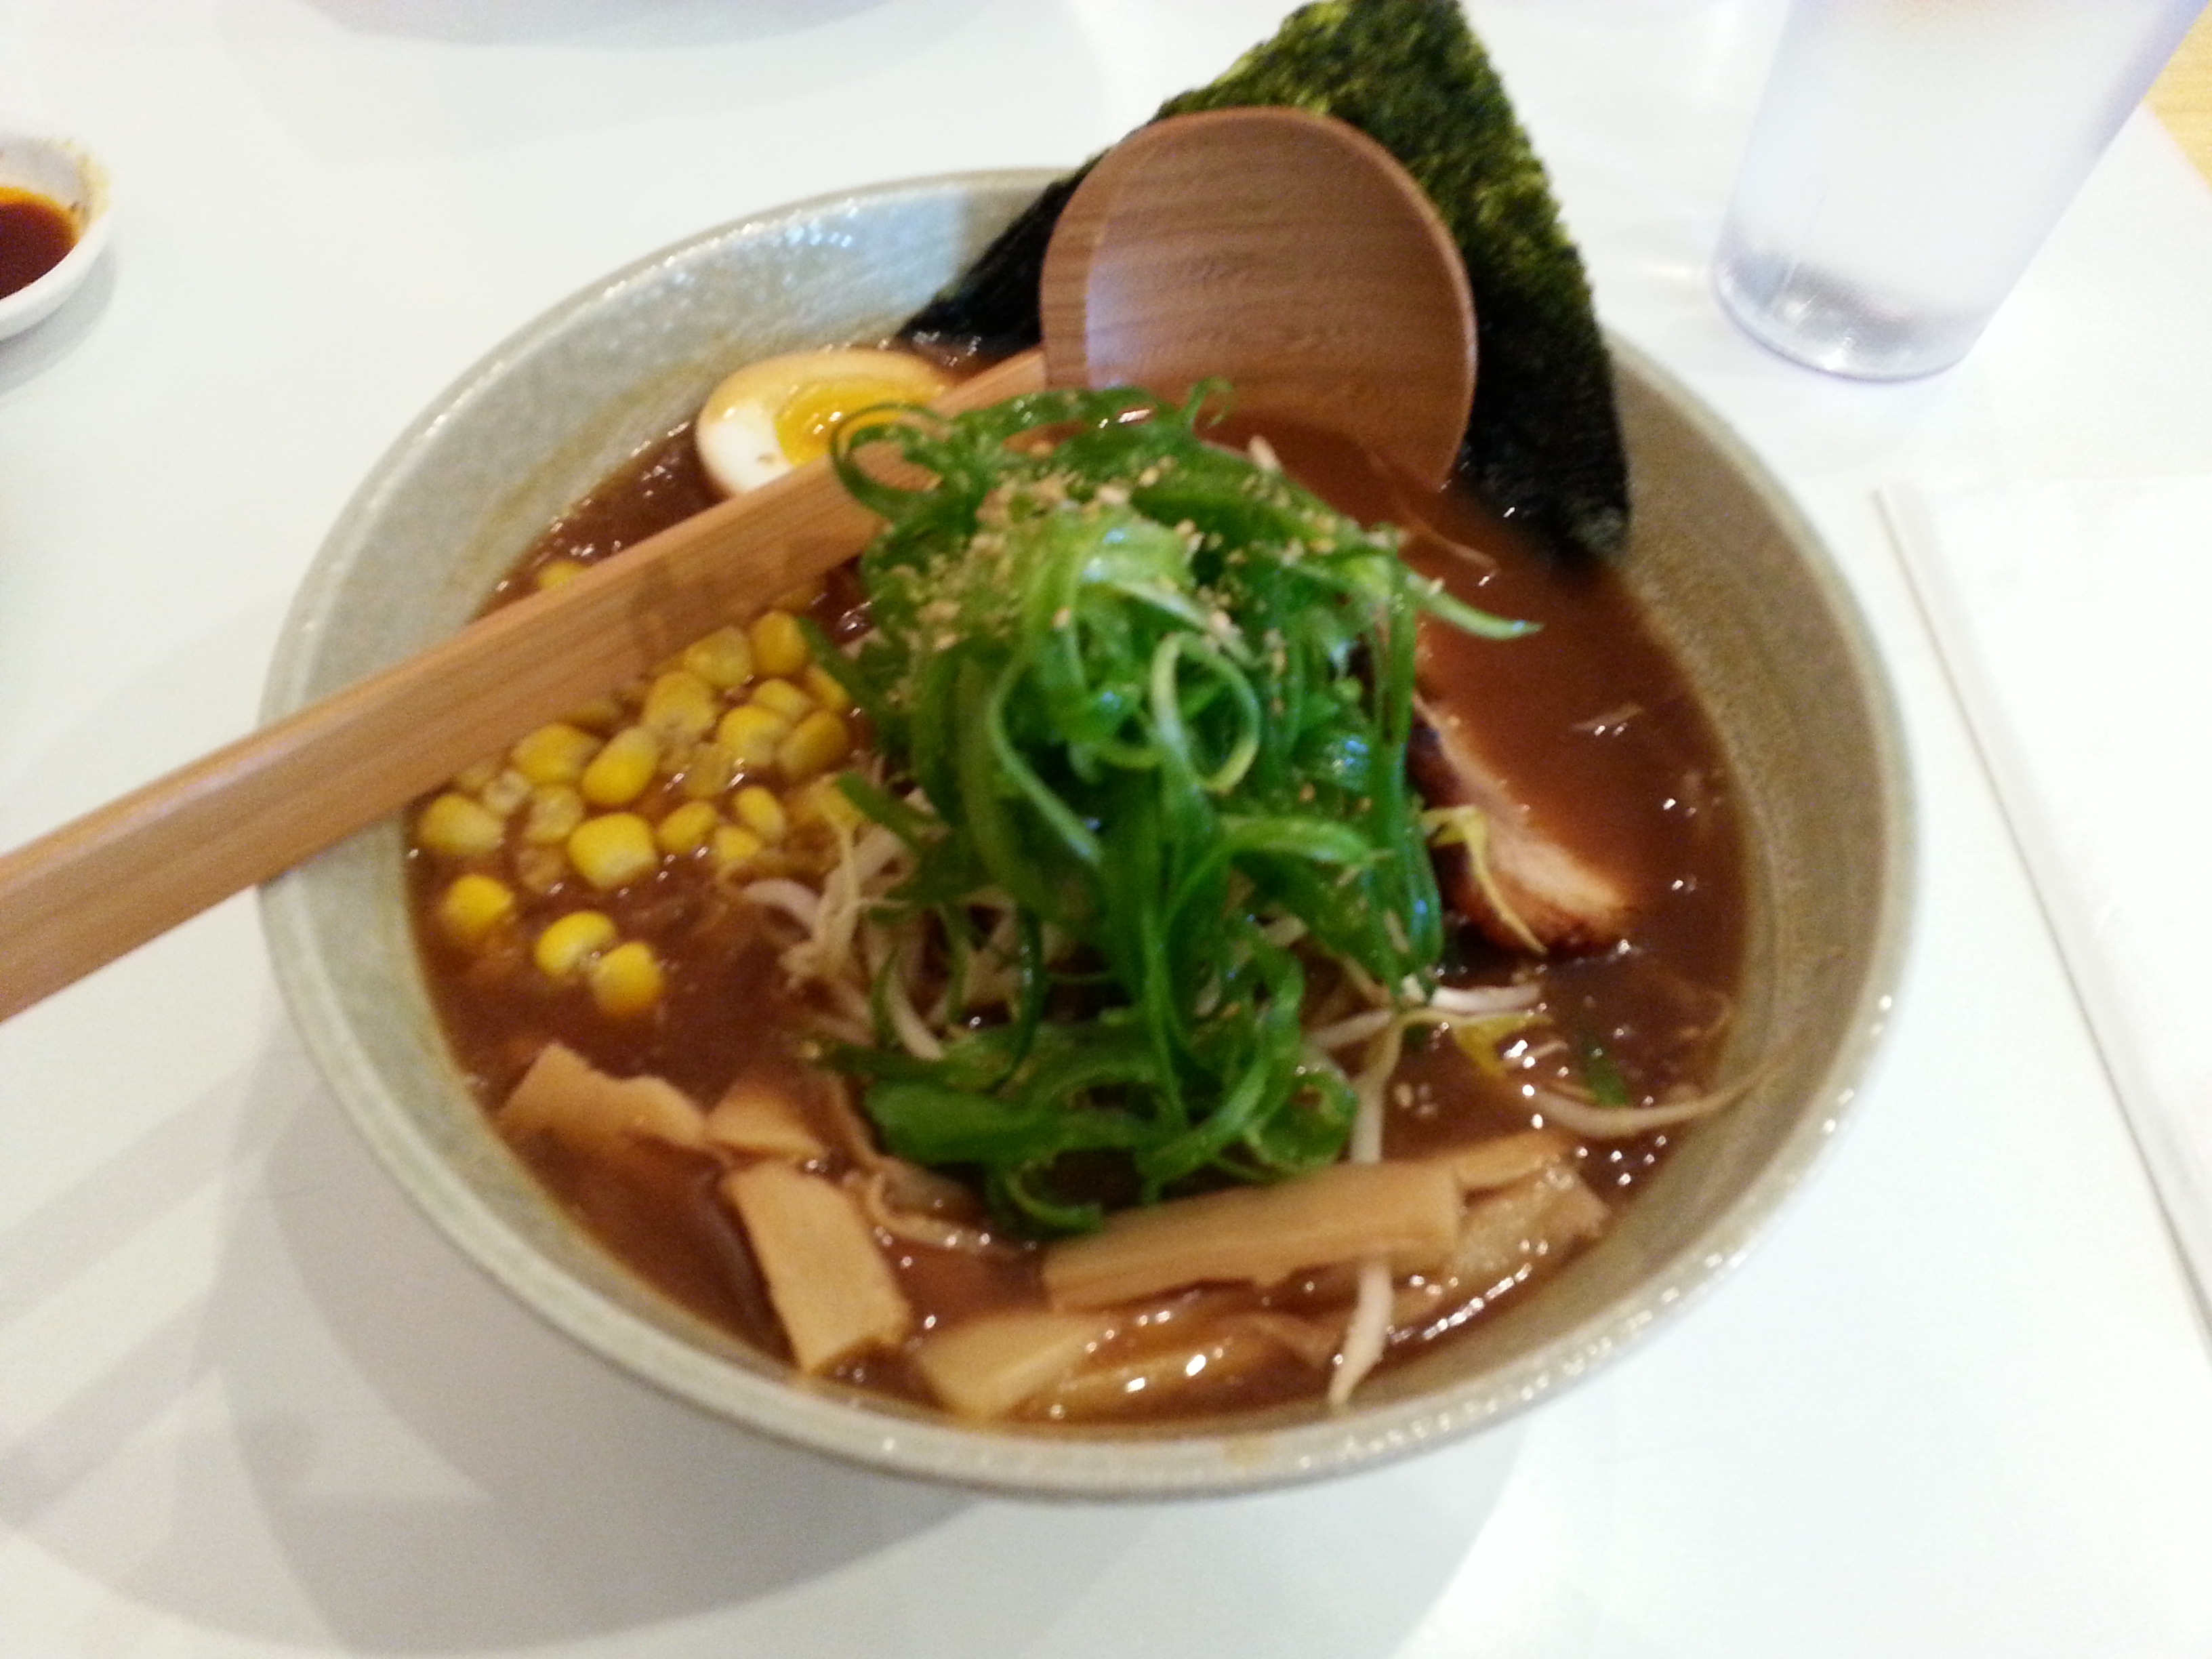 Curry ramen with bean sprouts, soft boiled egg, cha shu, Kan-pyo, nori and corn